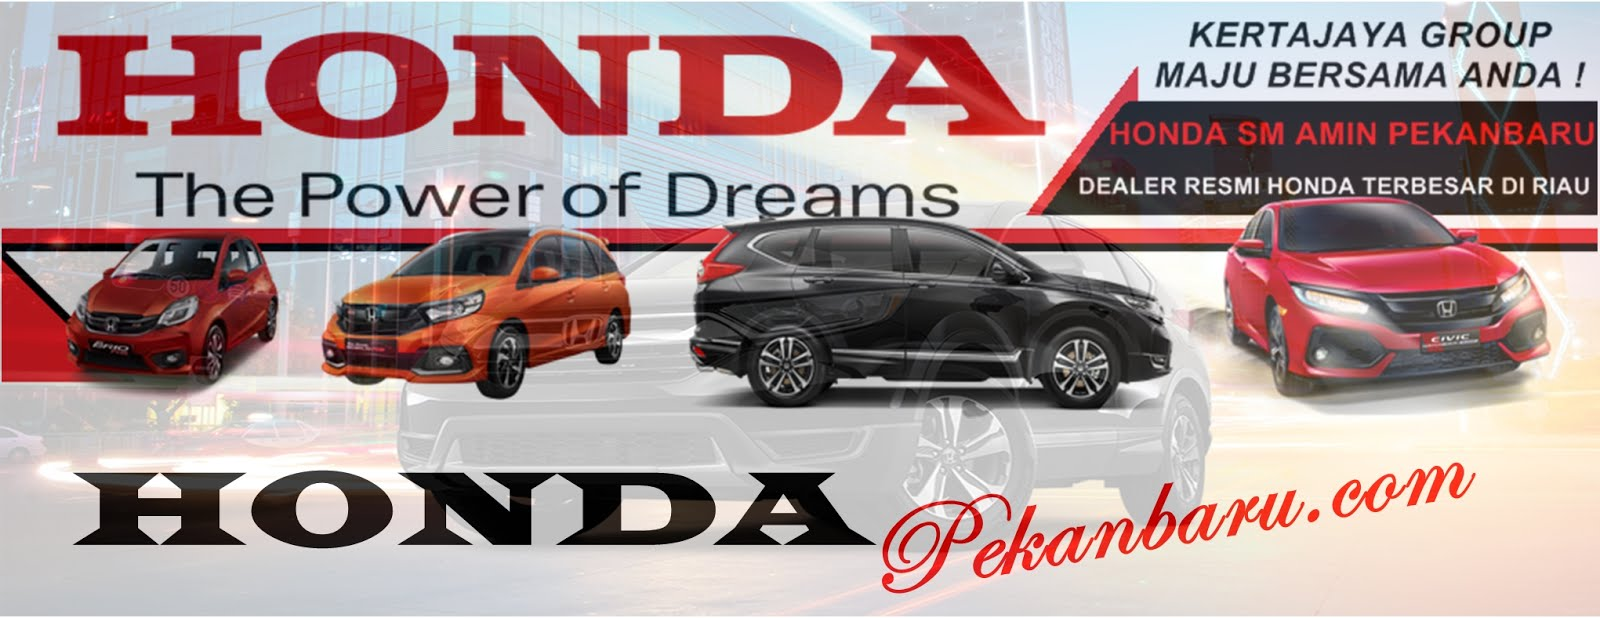 Harga, Kredit, Honda, Brio, Jazz, HRV, City, Civic Turbo, CRV, BRV, Pekanbaru,Riau November 2019